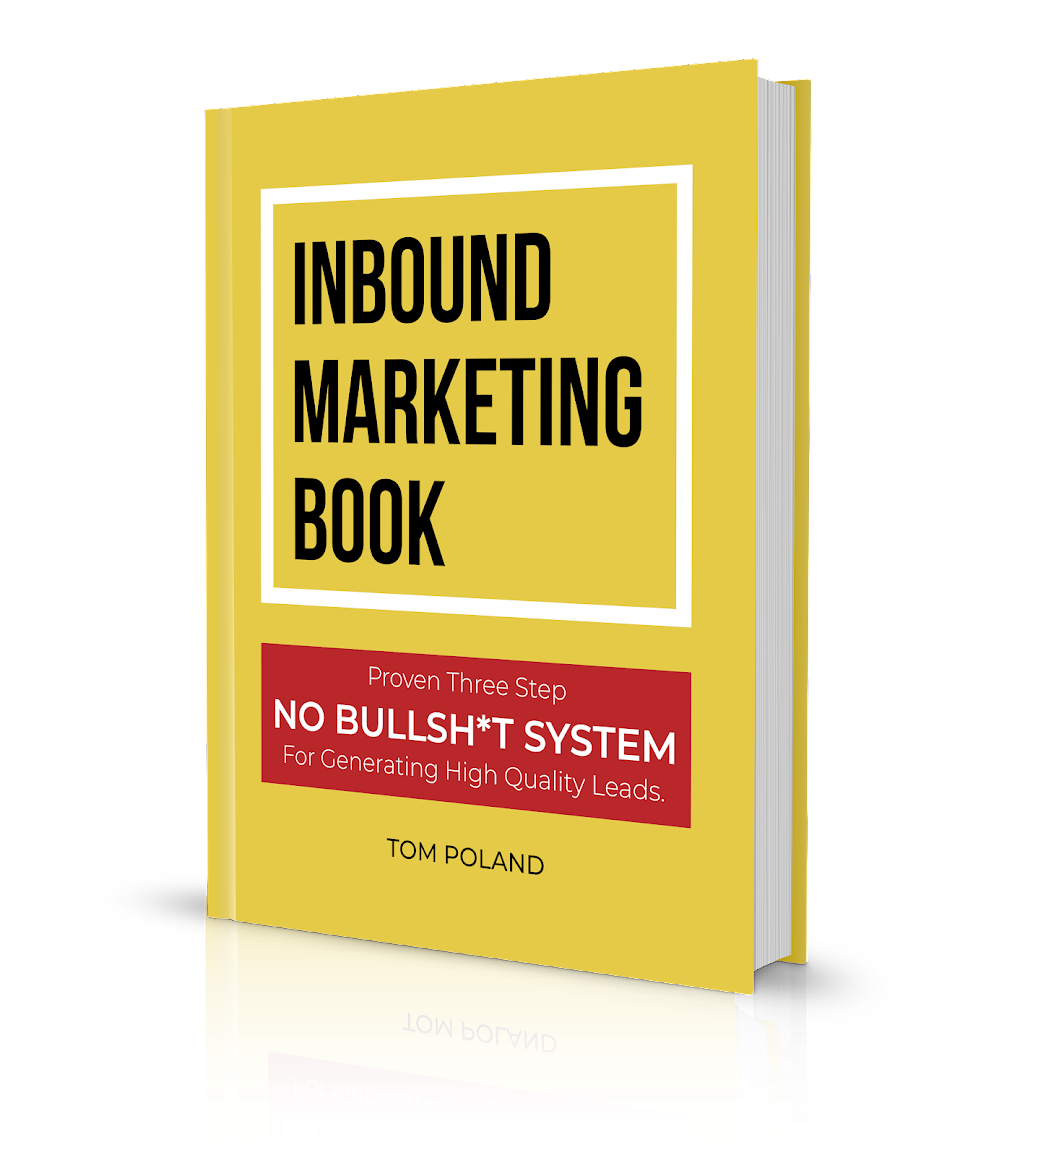 Inboud Marketing Book